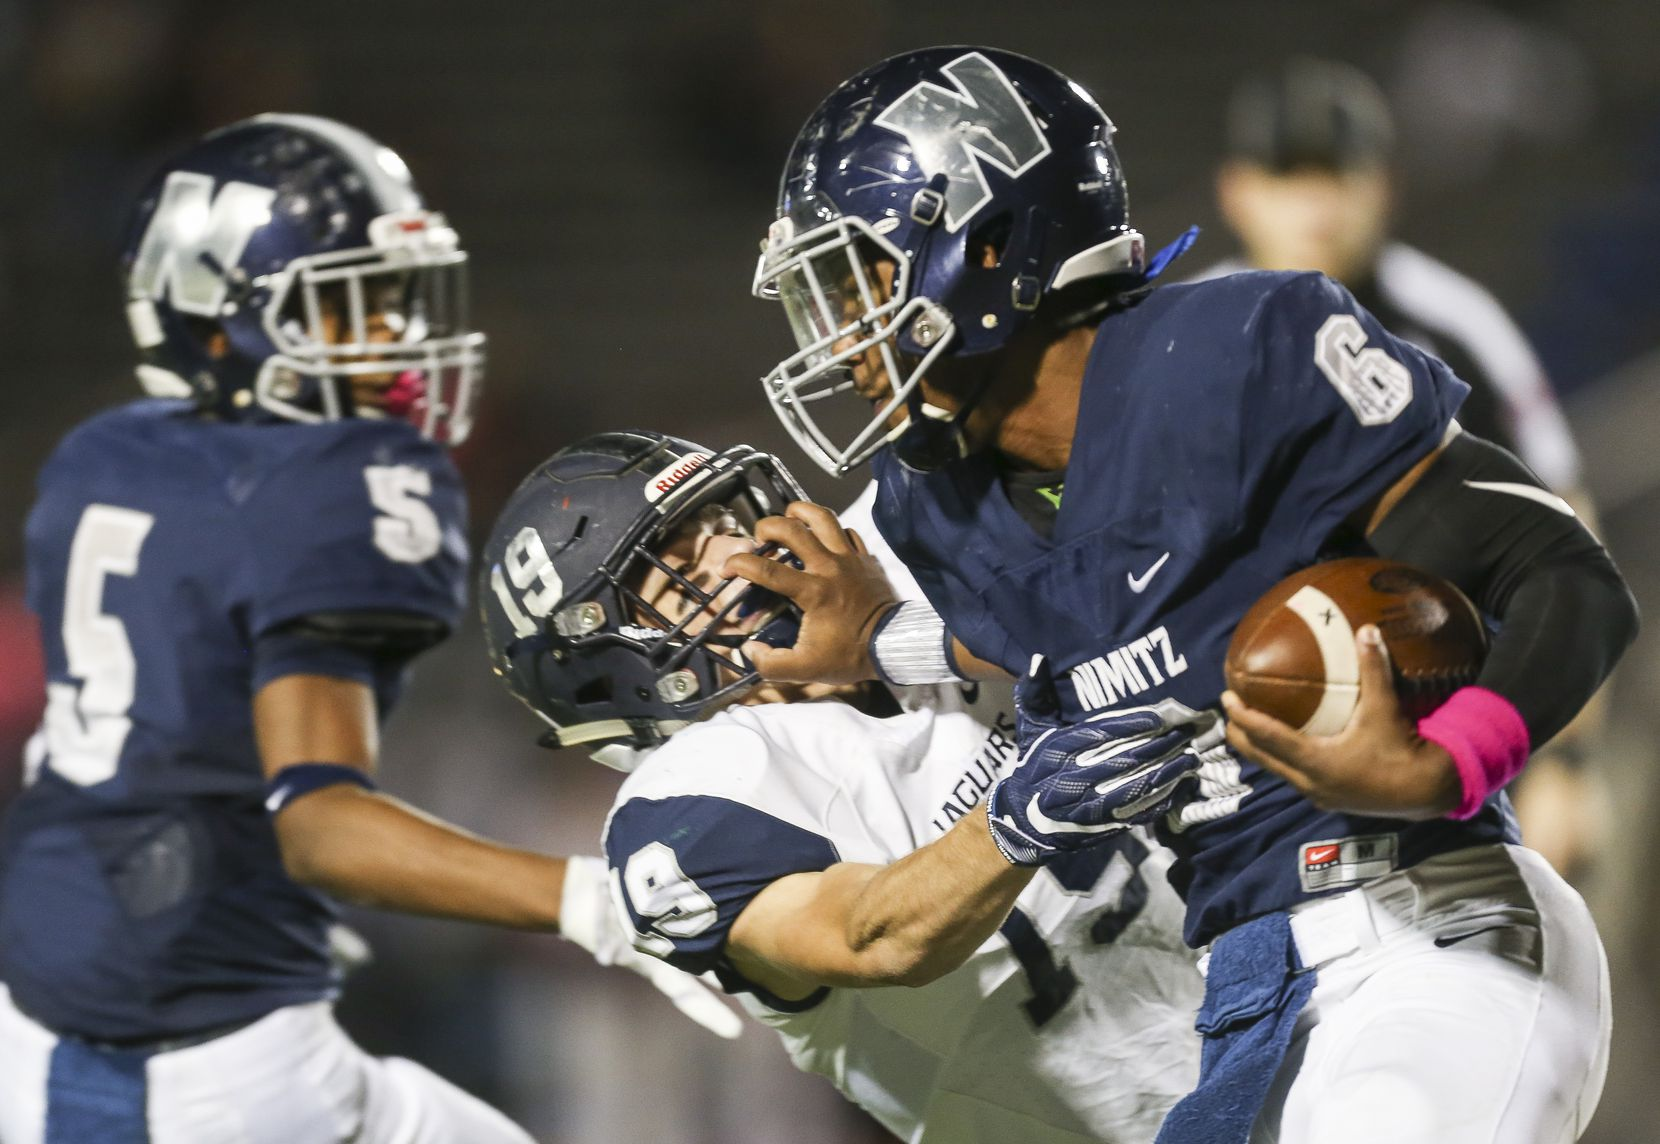 Nimitz running back Christian Nelms (6) breaks past Flower Mound safety Zach Compton (19) during a matchup between Nimitz and Flower Mound on Thursday, Oct. 11, 2018 in Irving, Texas. (Ryan Michalesko/The Dallas Morning News)